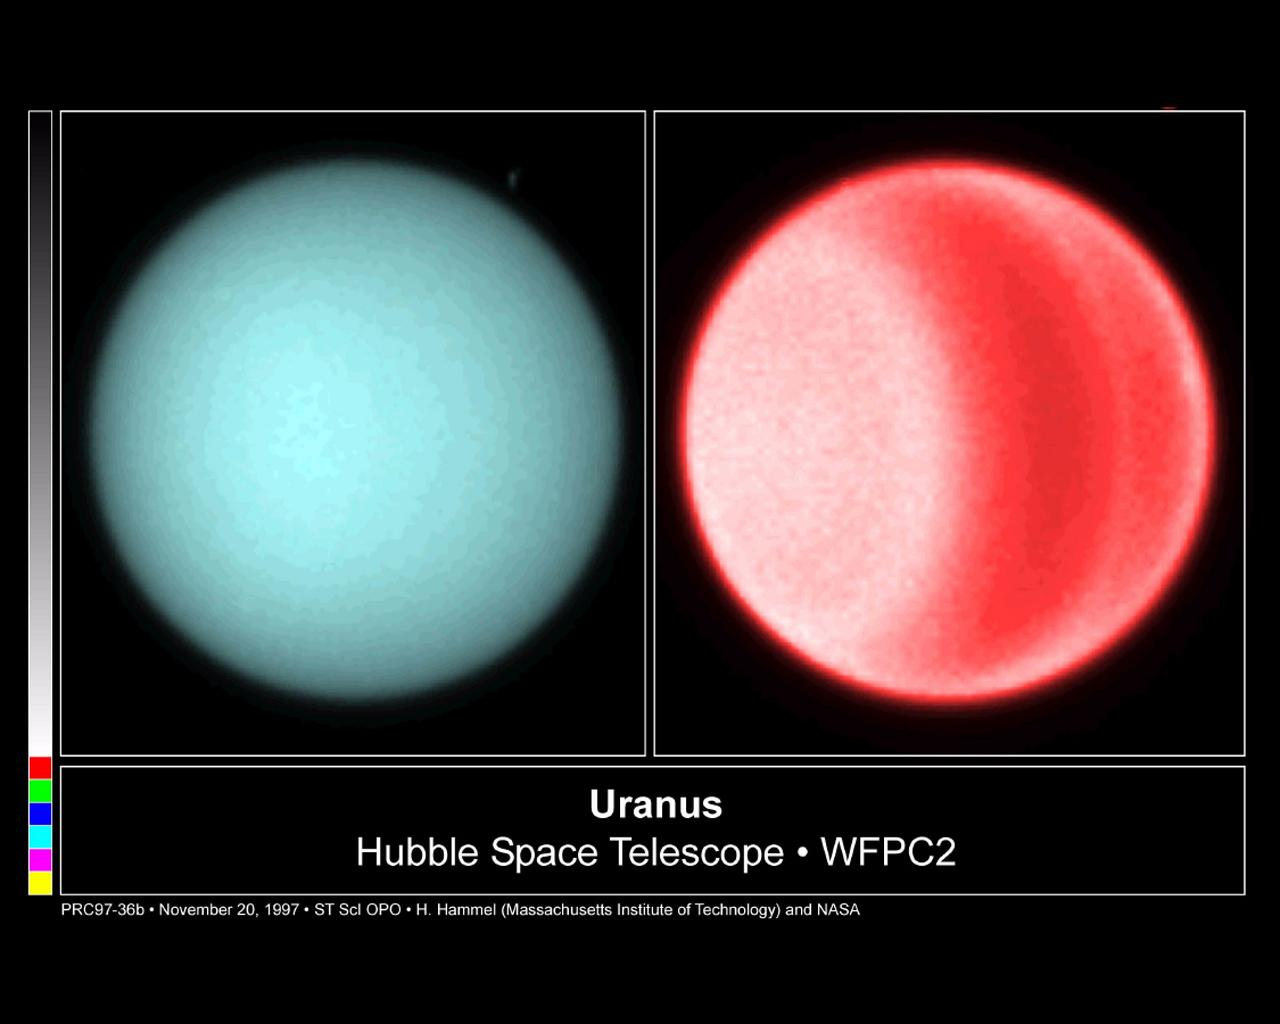 Taken in 1997, NASA's Hubble Space Telescope, using visible light, detected clouds in the northern hemisphere of Uranus.